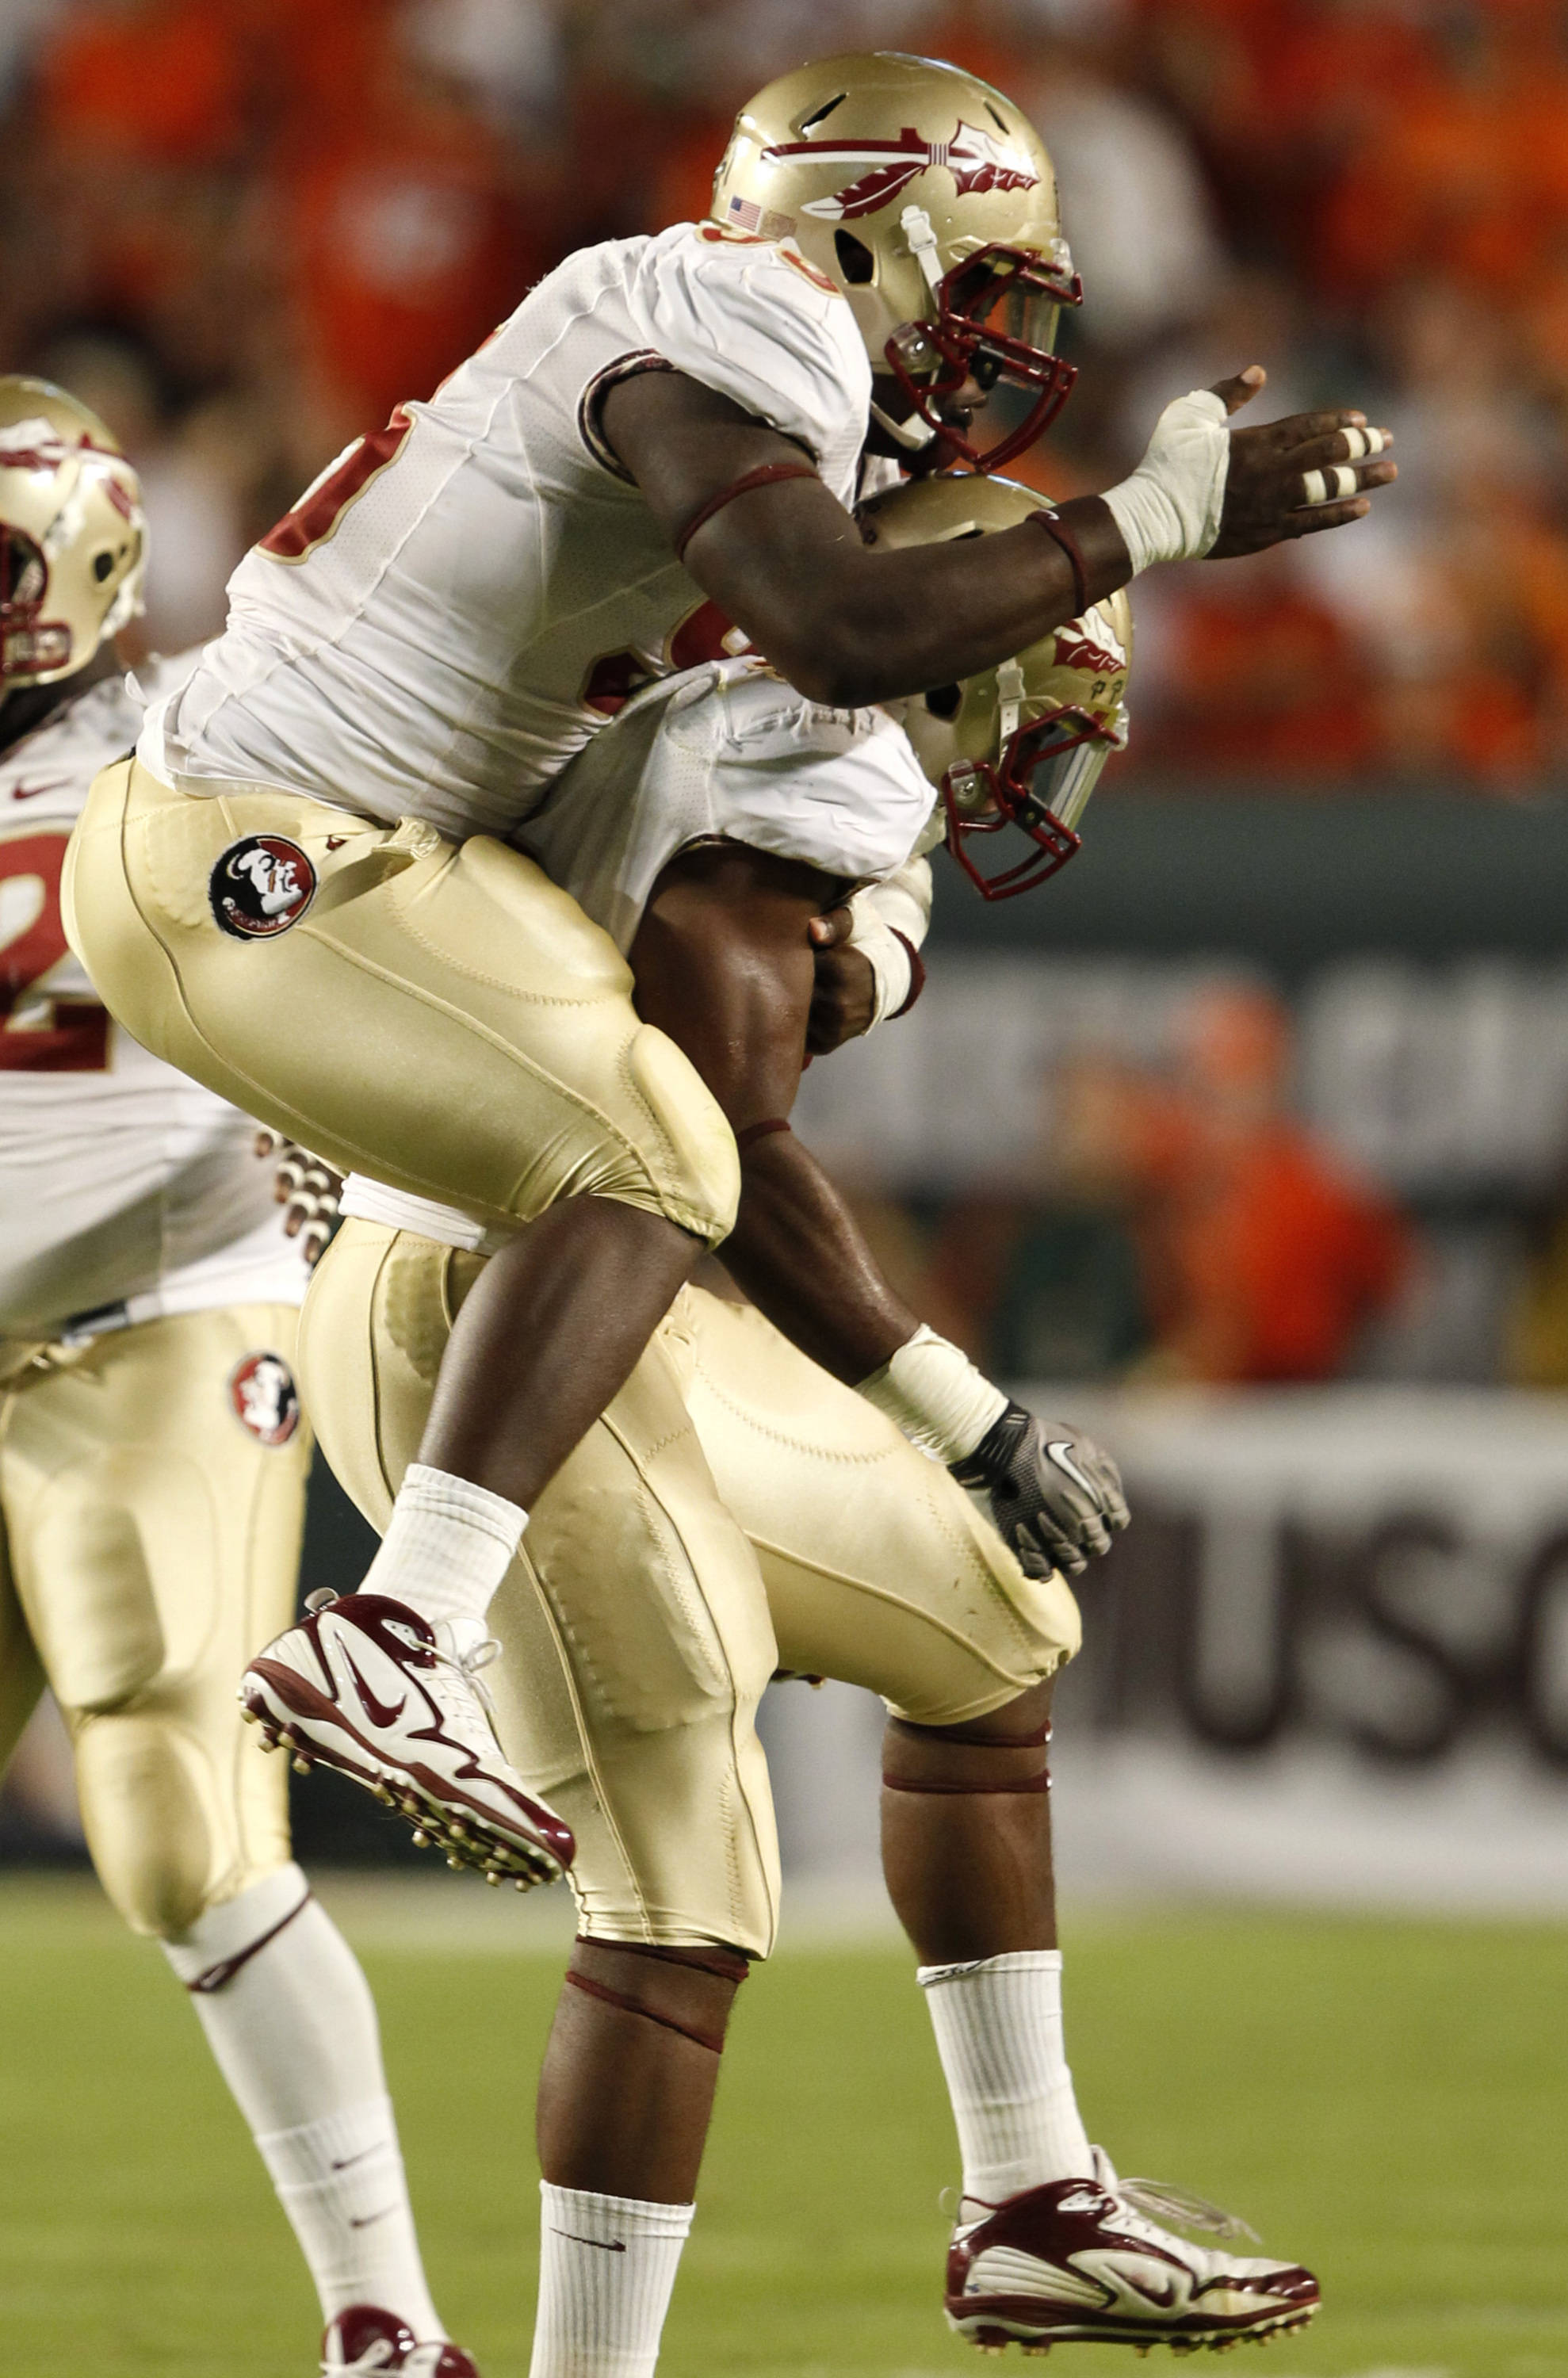 Florida State defensive tackle Everett Dawkins celebrates with defensive end Markus White after White sacked Miami quarterback Jacory Harris.